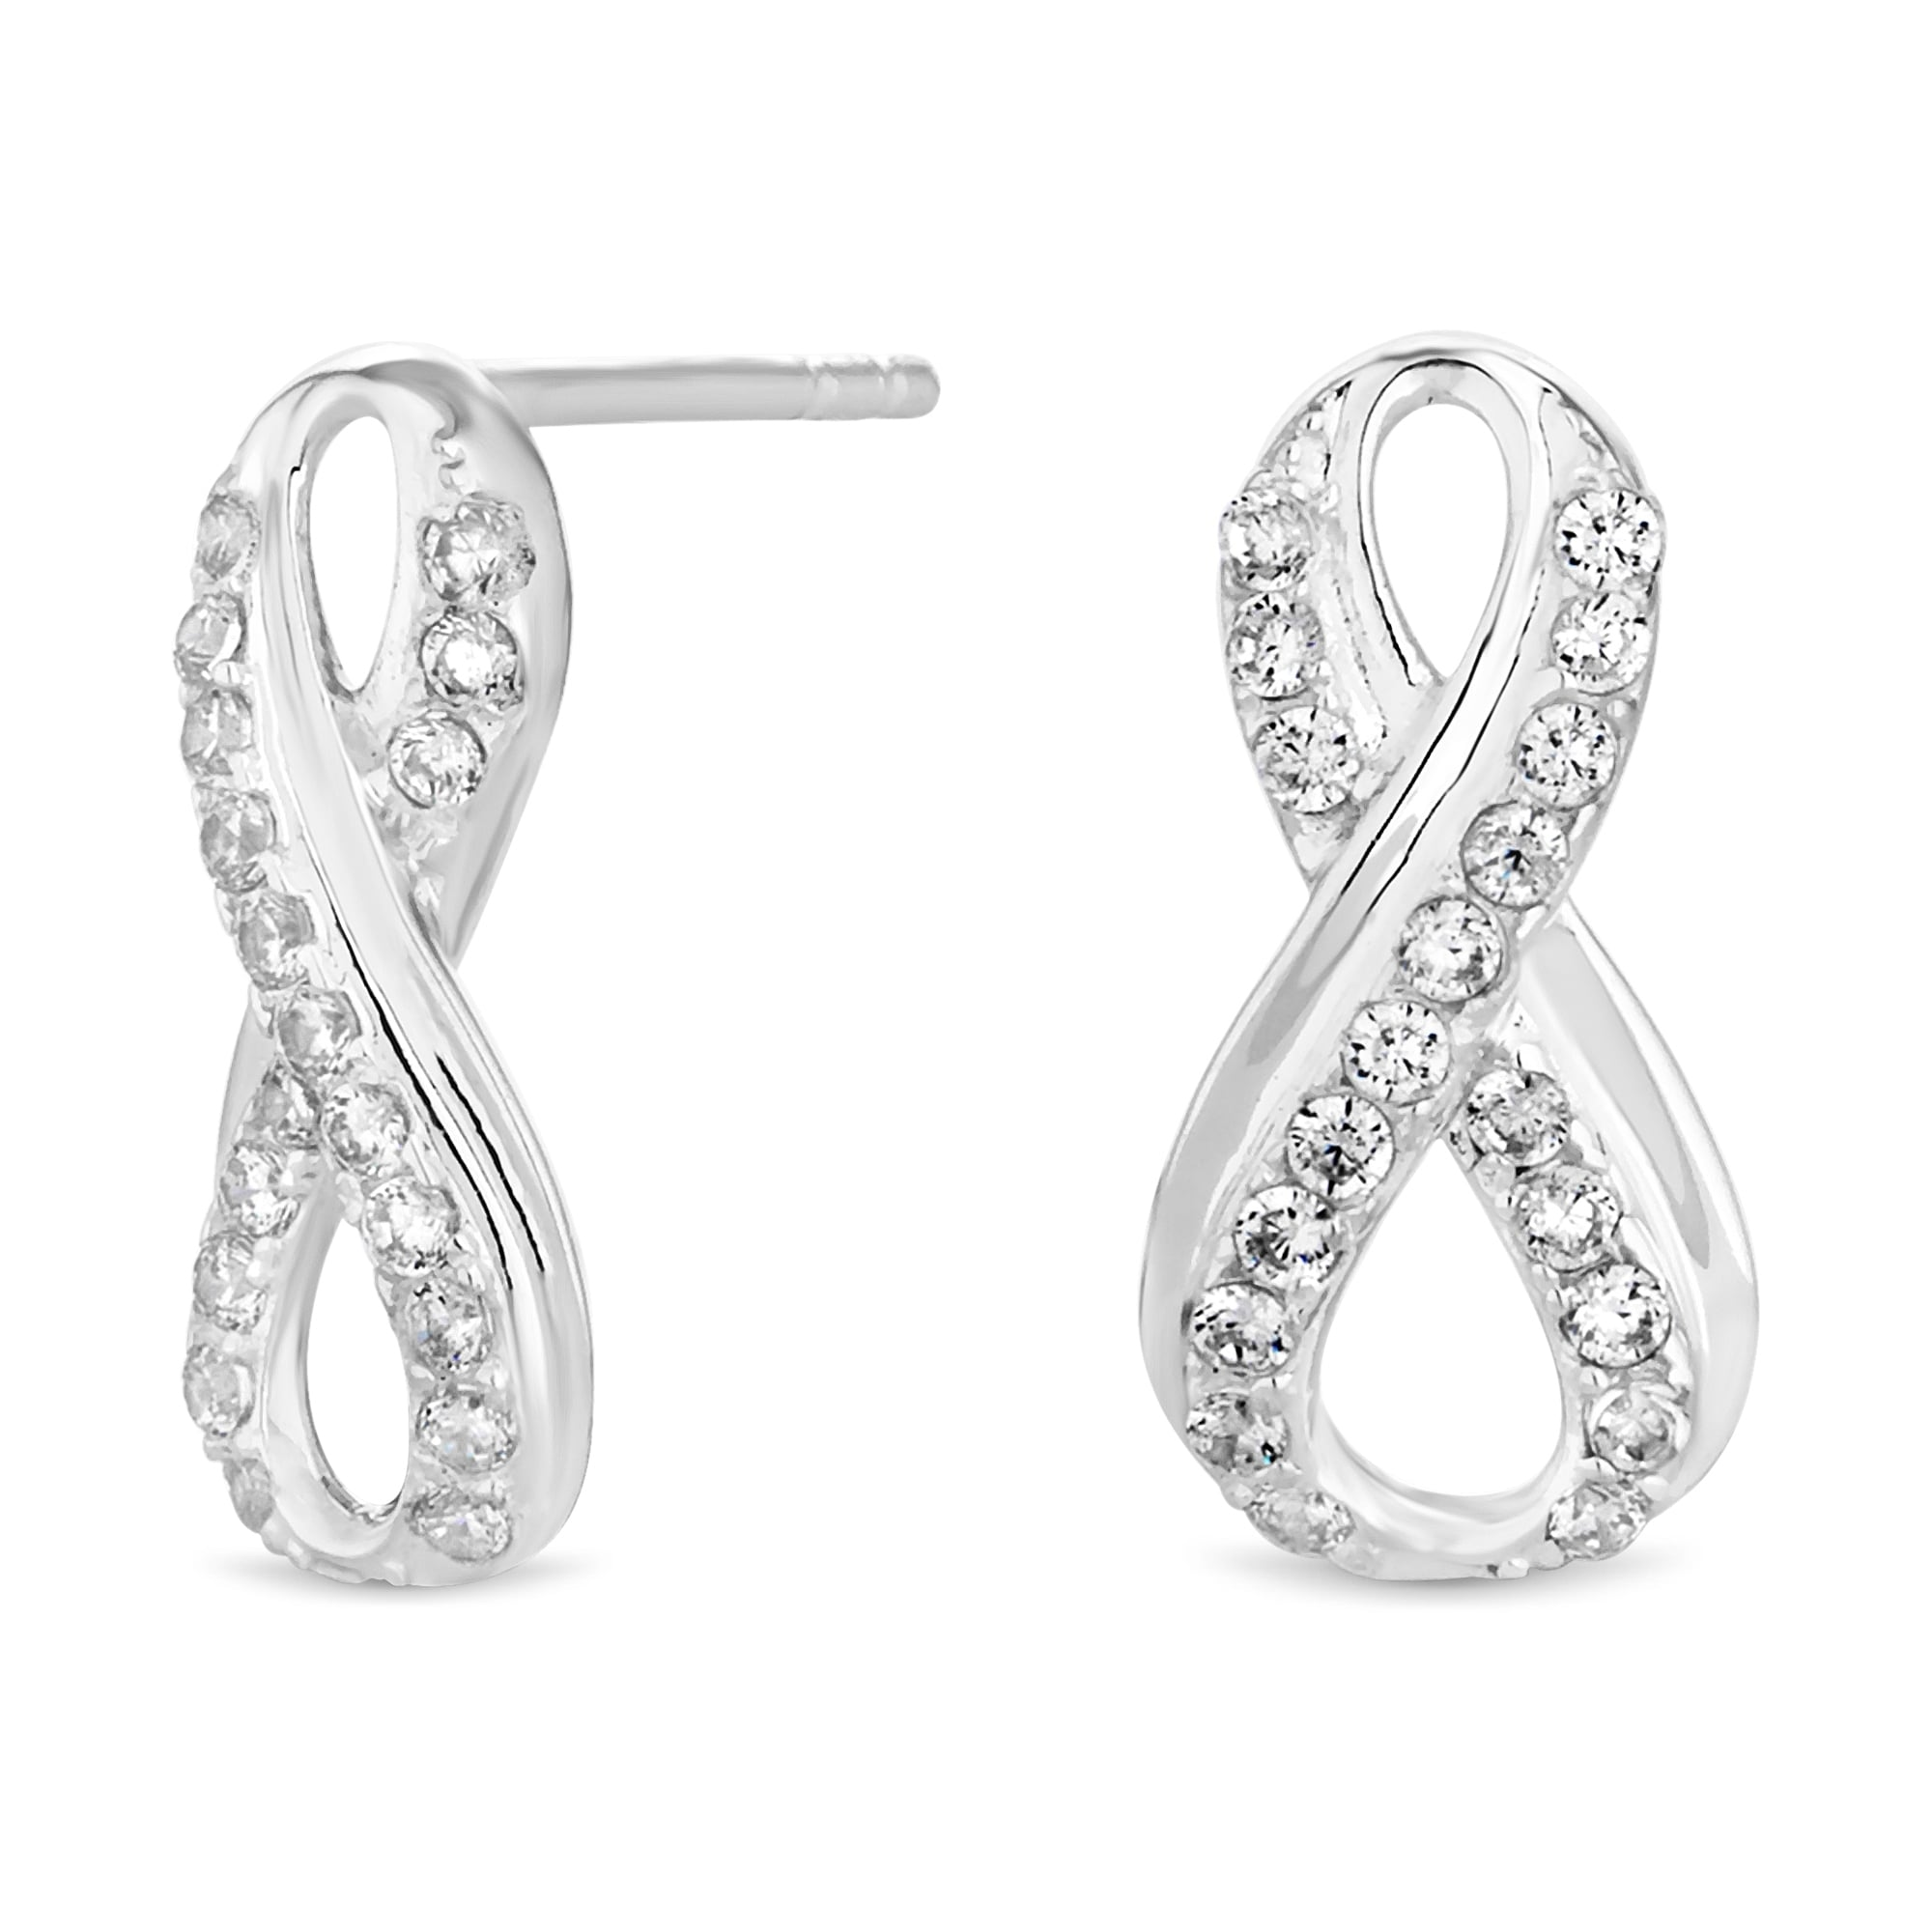 earrings shop crowdyhouse infinity on sterling silver